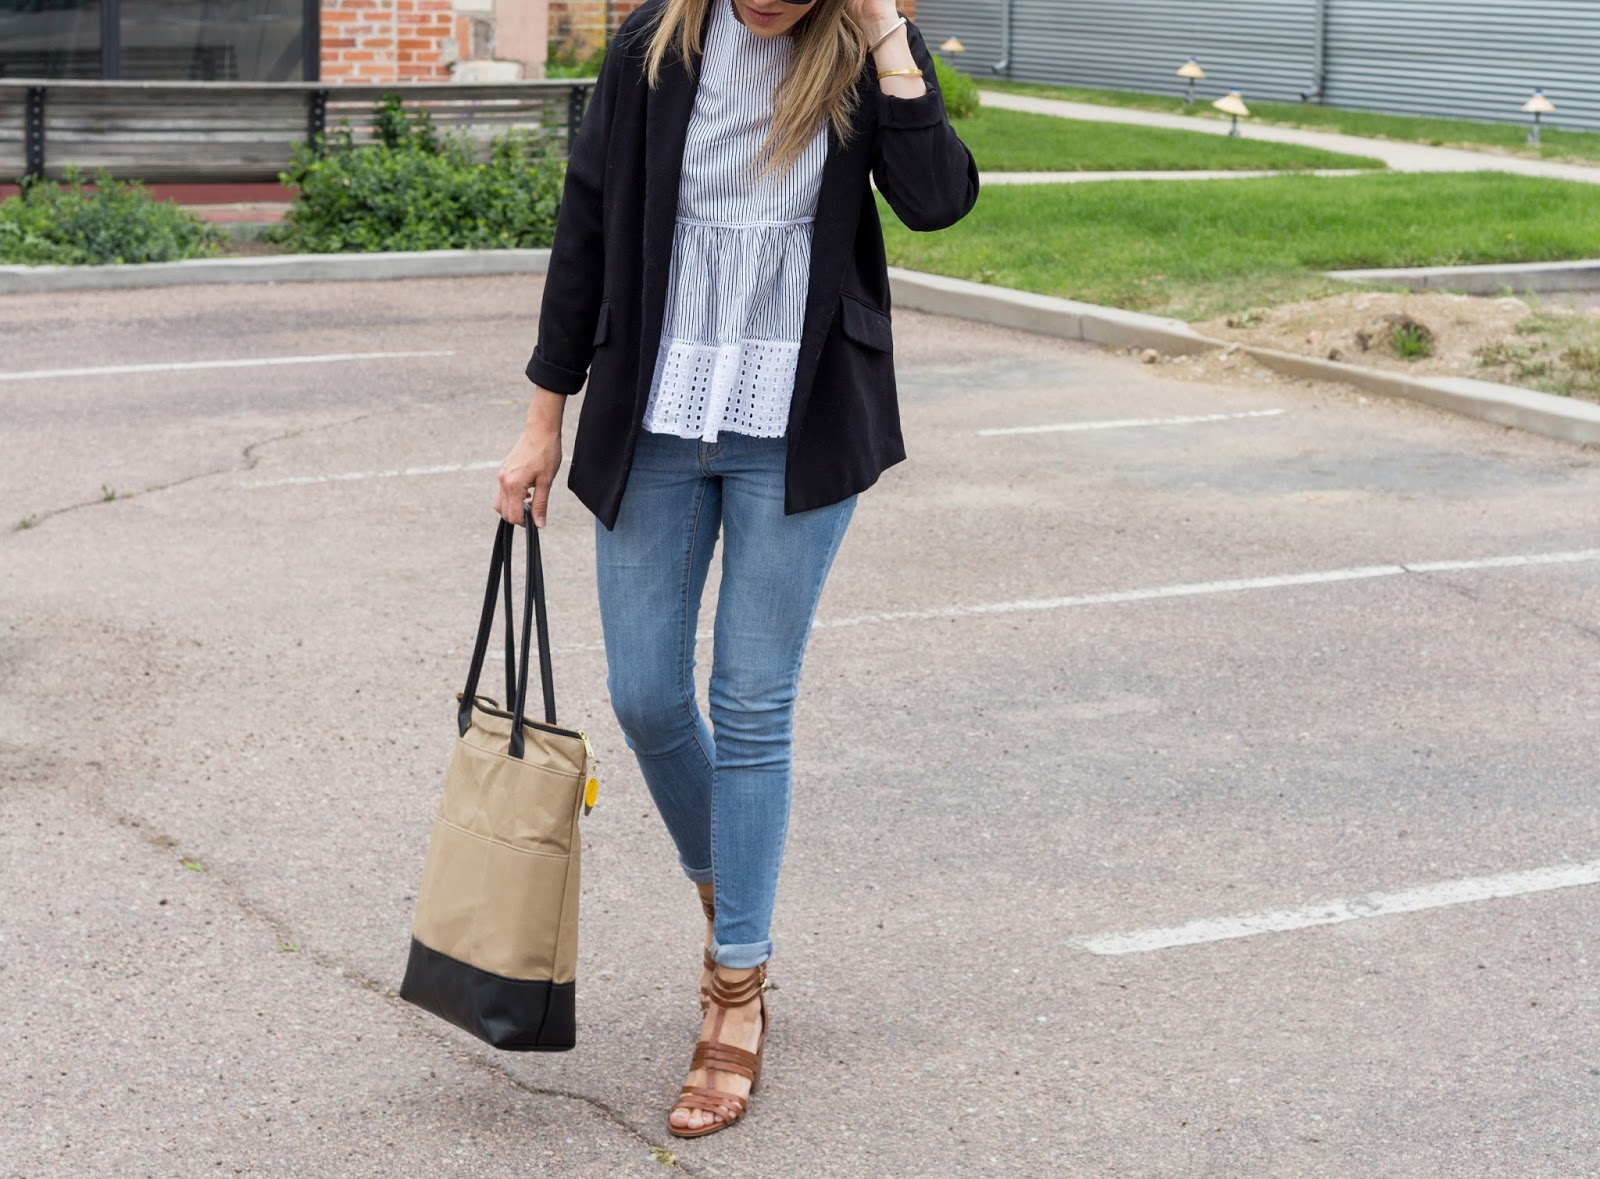 An Oversized Blazer Makes For An Easy Day To Night Look